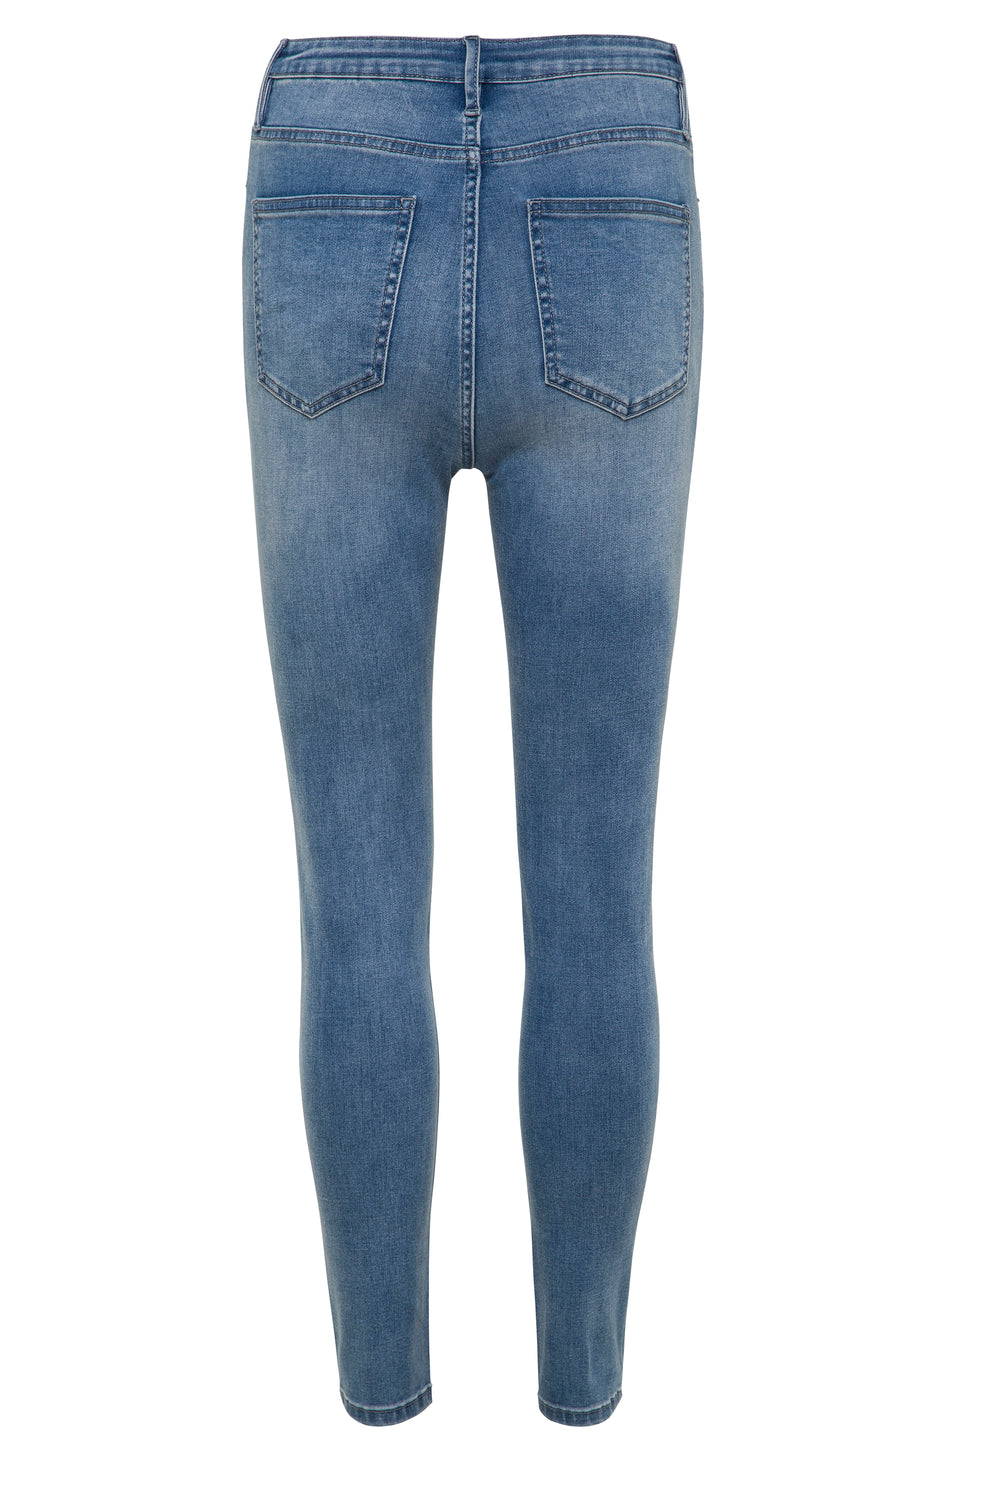 Georgia Jeans In Soft Blue Denim